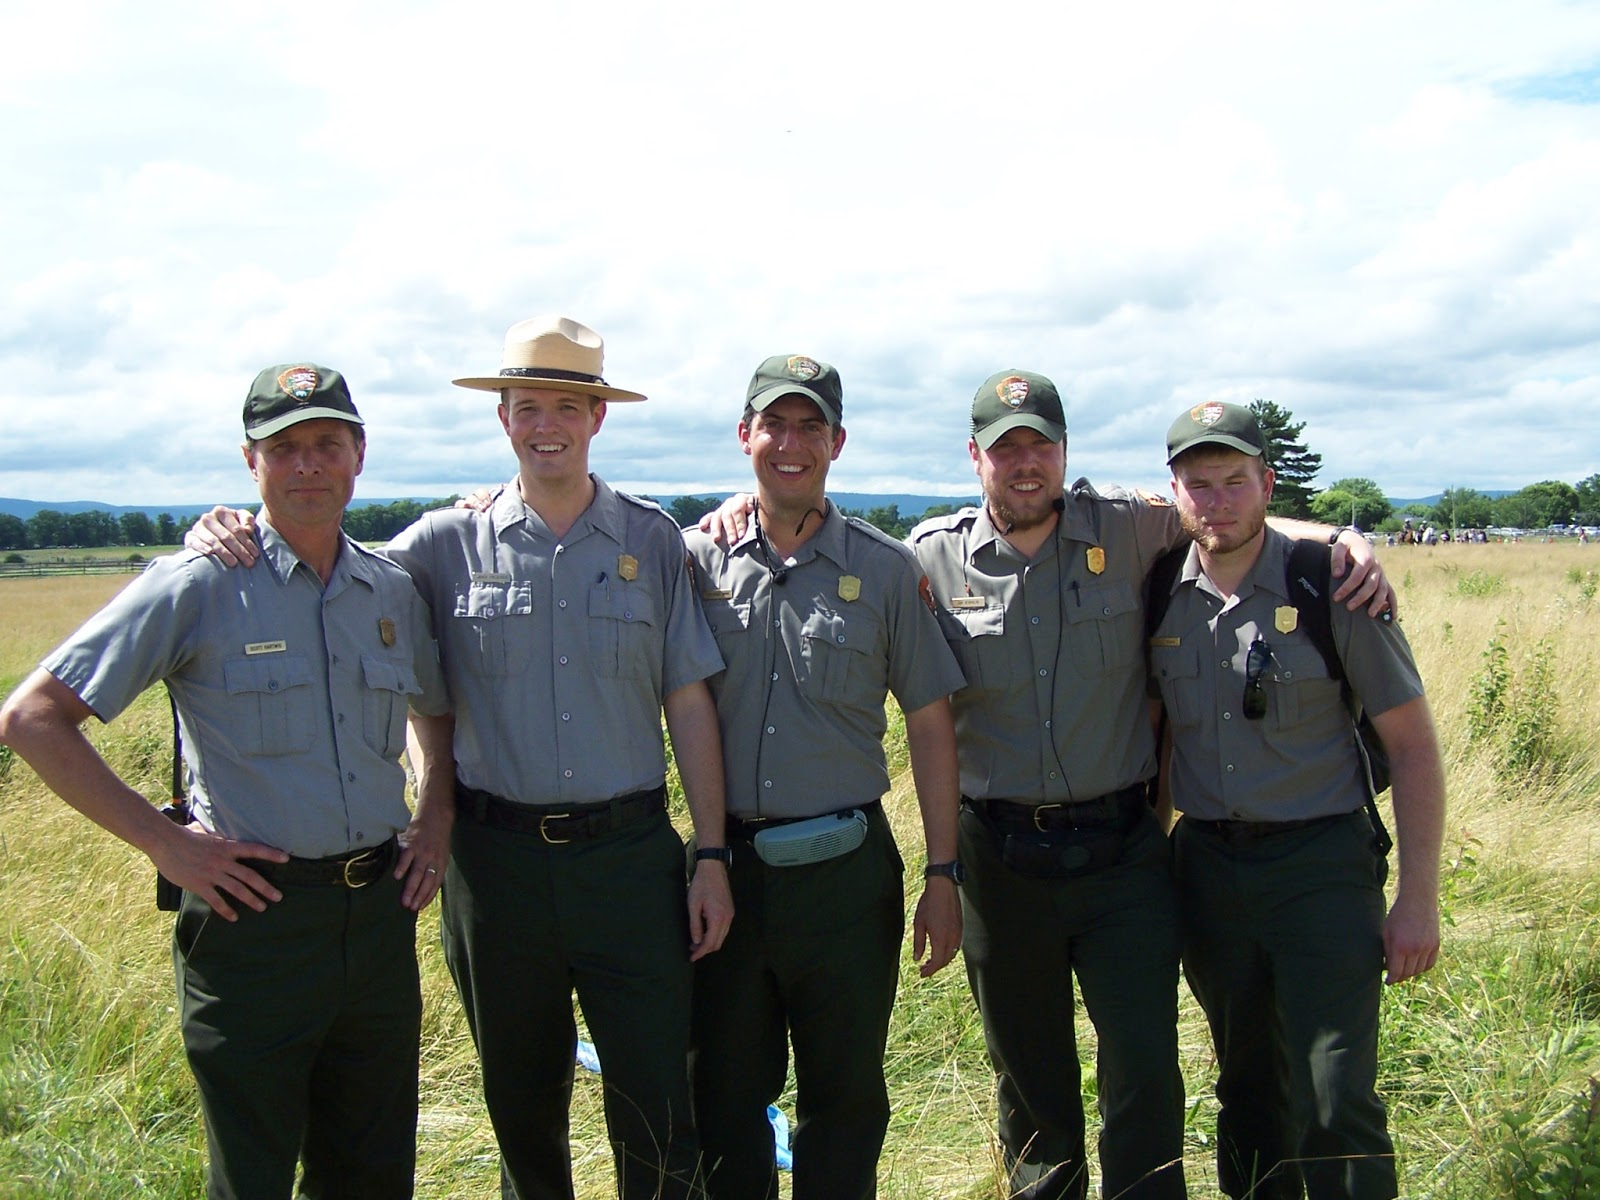 park ranger salary Jobs with nc state parks park rangers may be the most recognizable face of north carolina's state parks system, but their dedication to the mission of stewardship is .